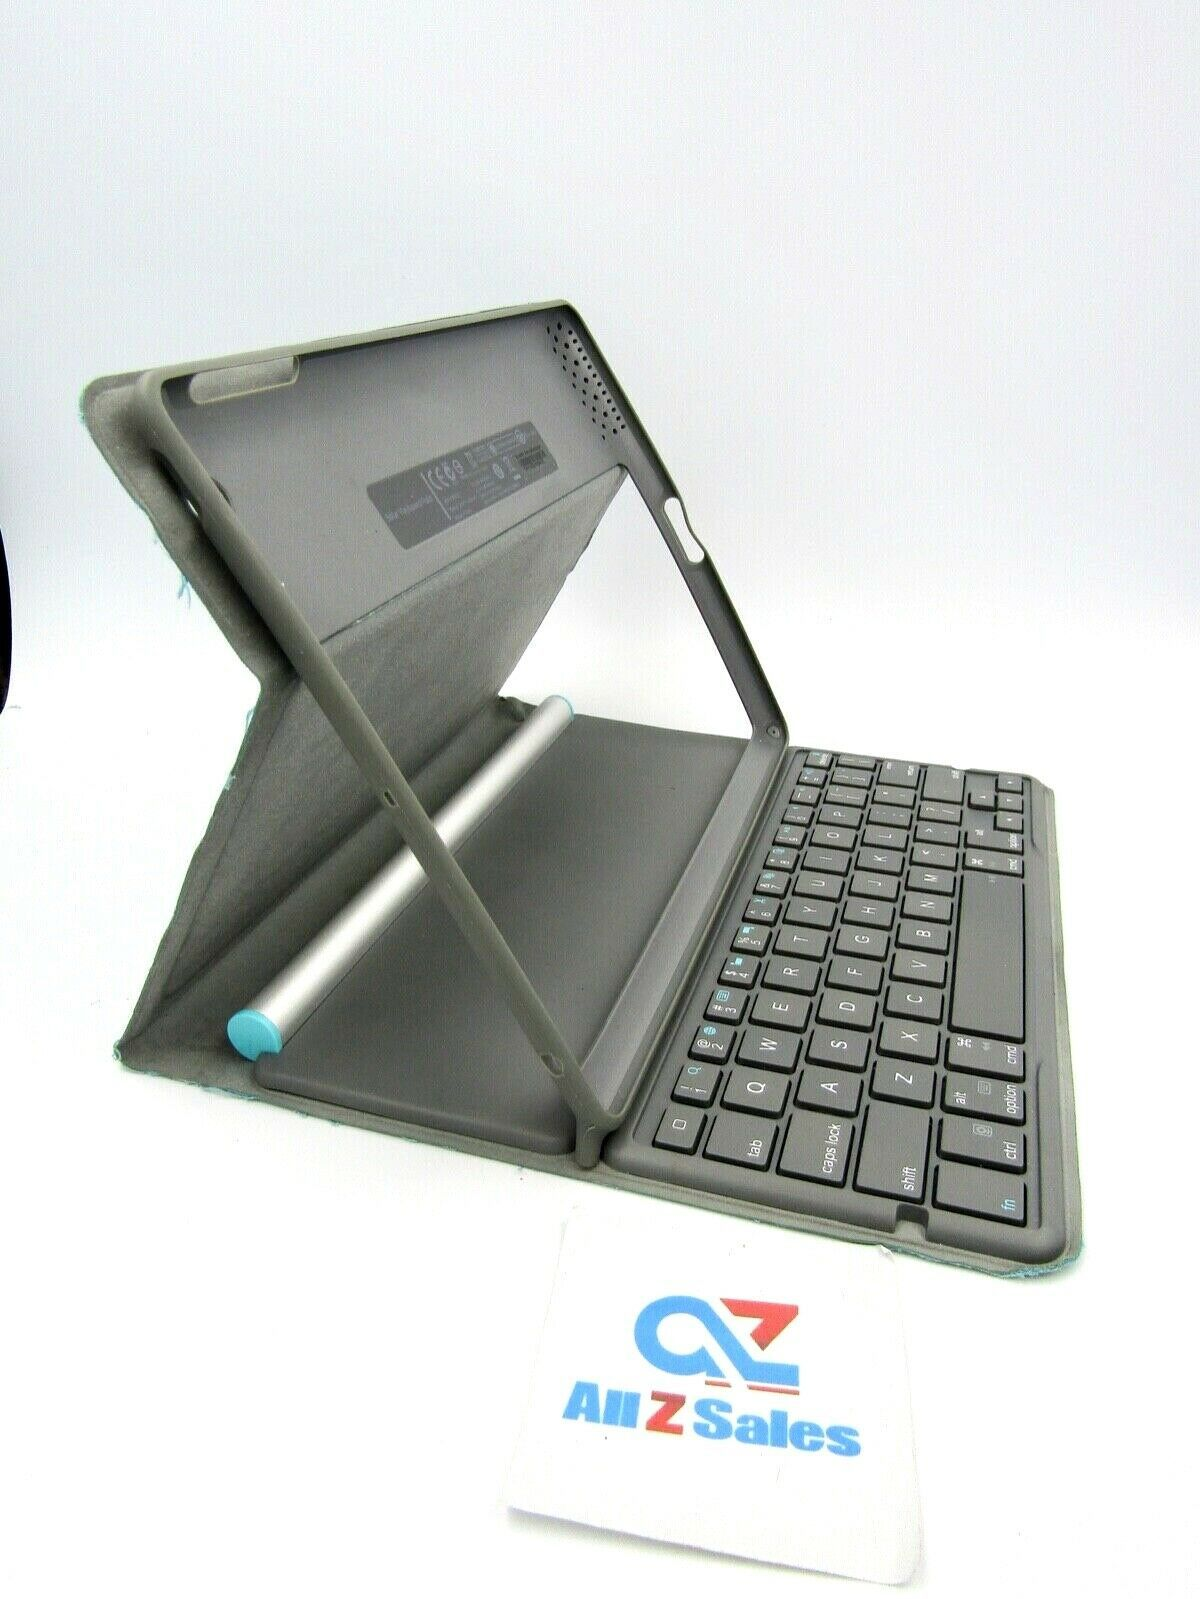 Primary image for Logitech Y-R0027 Solar Keyboard Folio for iPad 2/3/4 - Ice Blue - USED